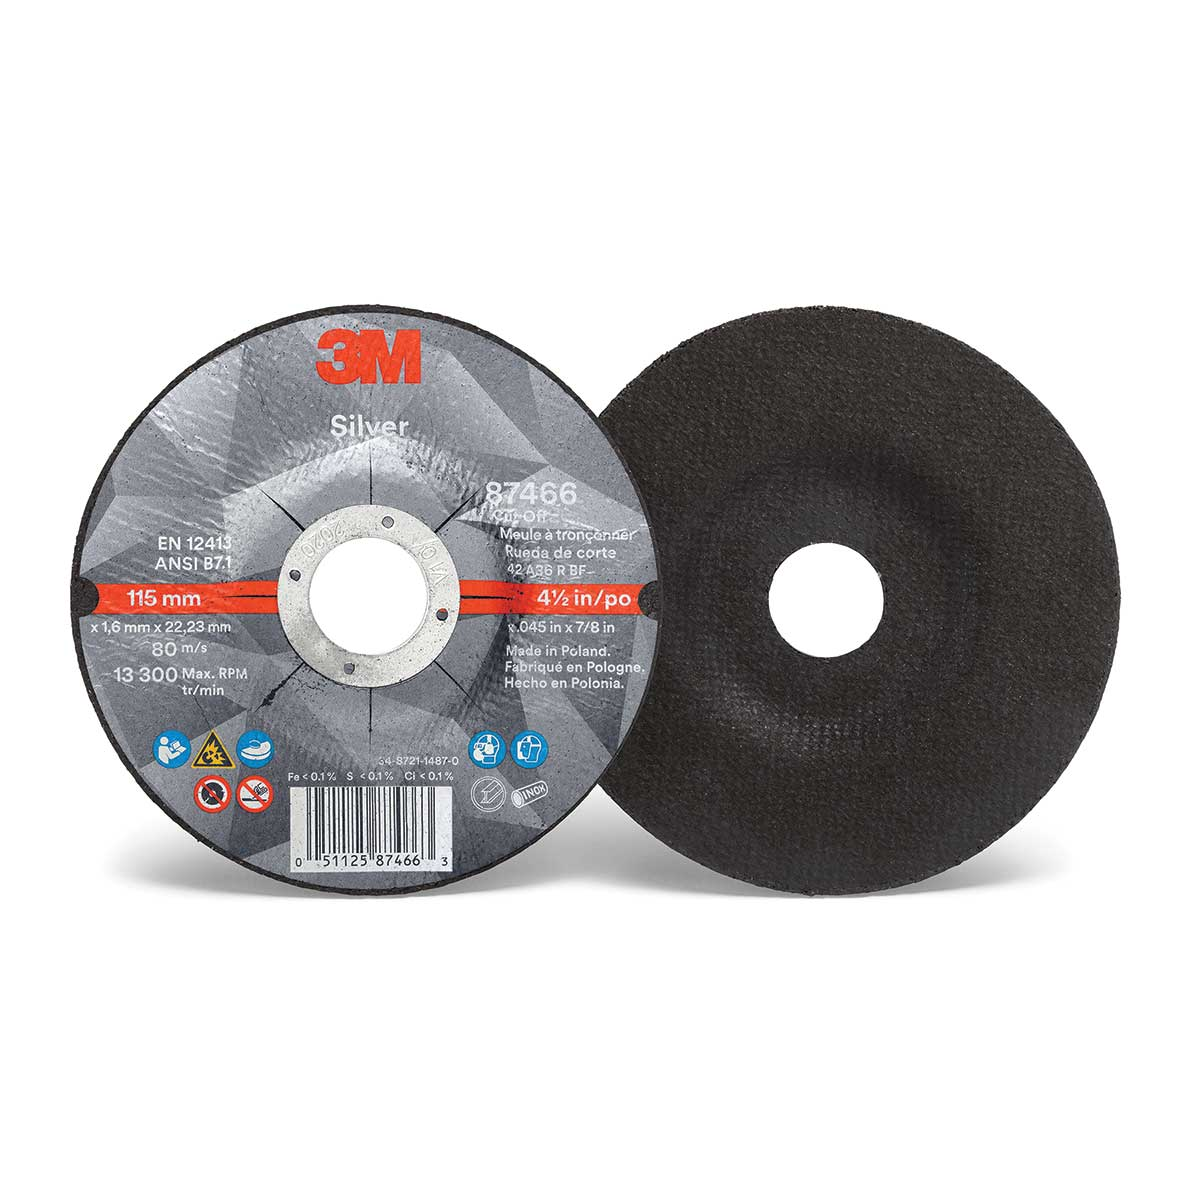 3M™ Silver Cut-Off Wheel, 87466, T27, 4.5 in x .045 in x 7/8 in, Case of 50